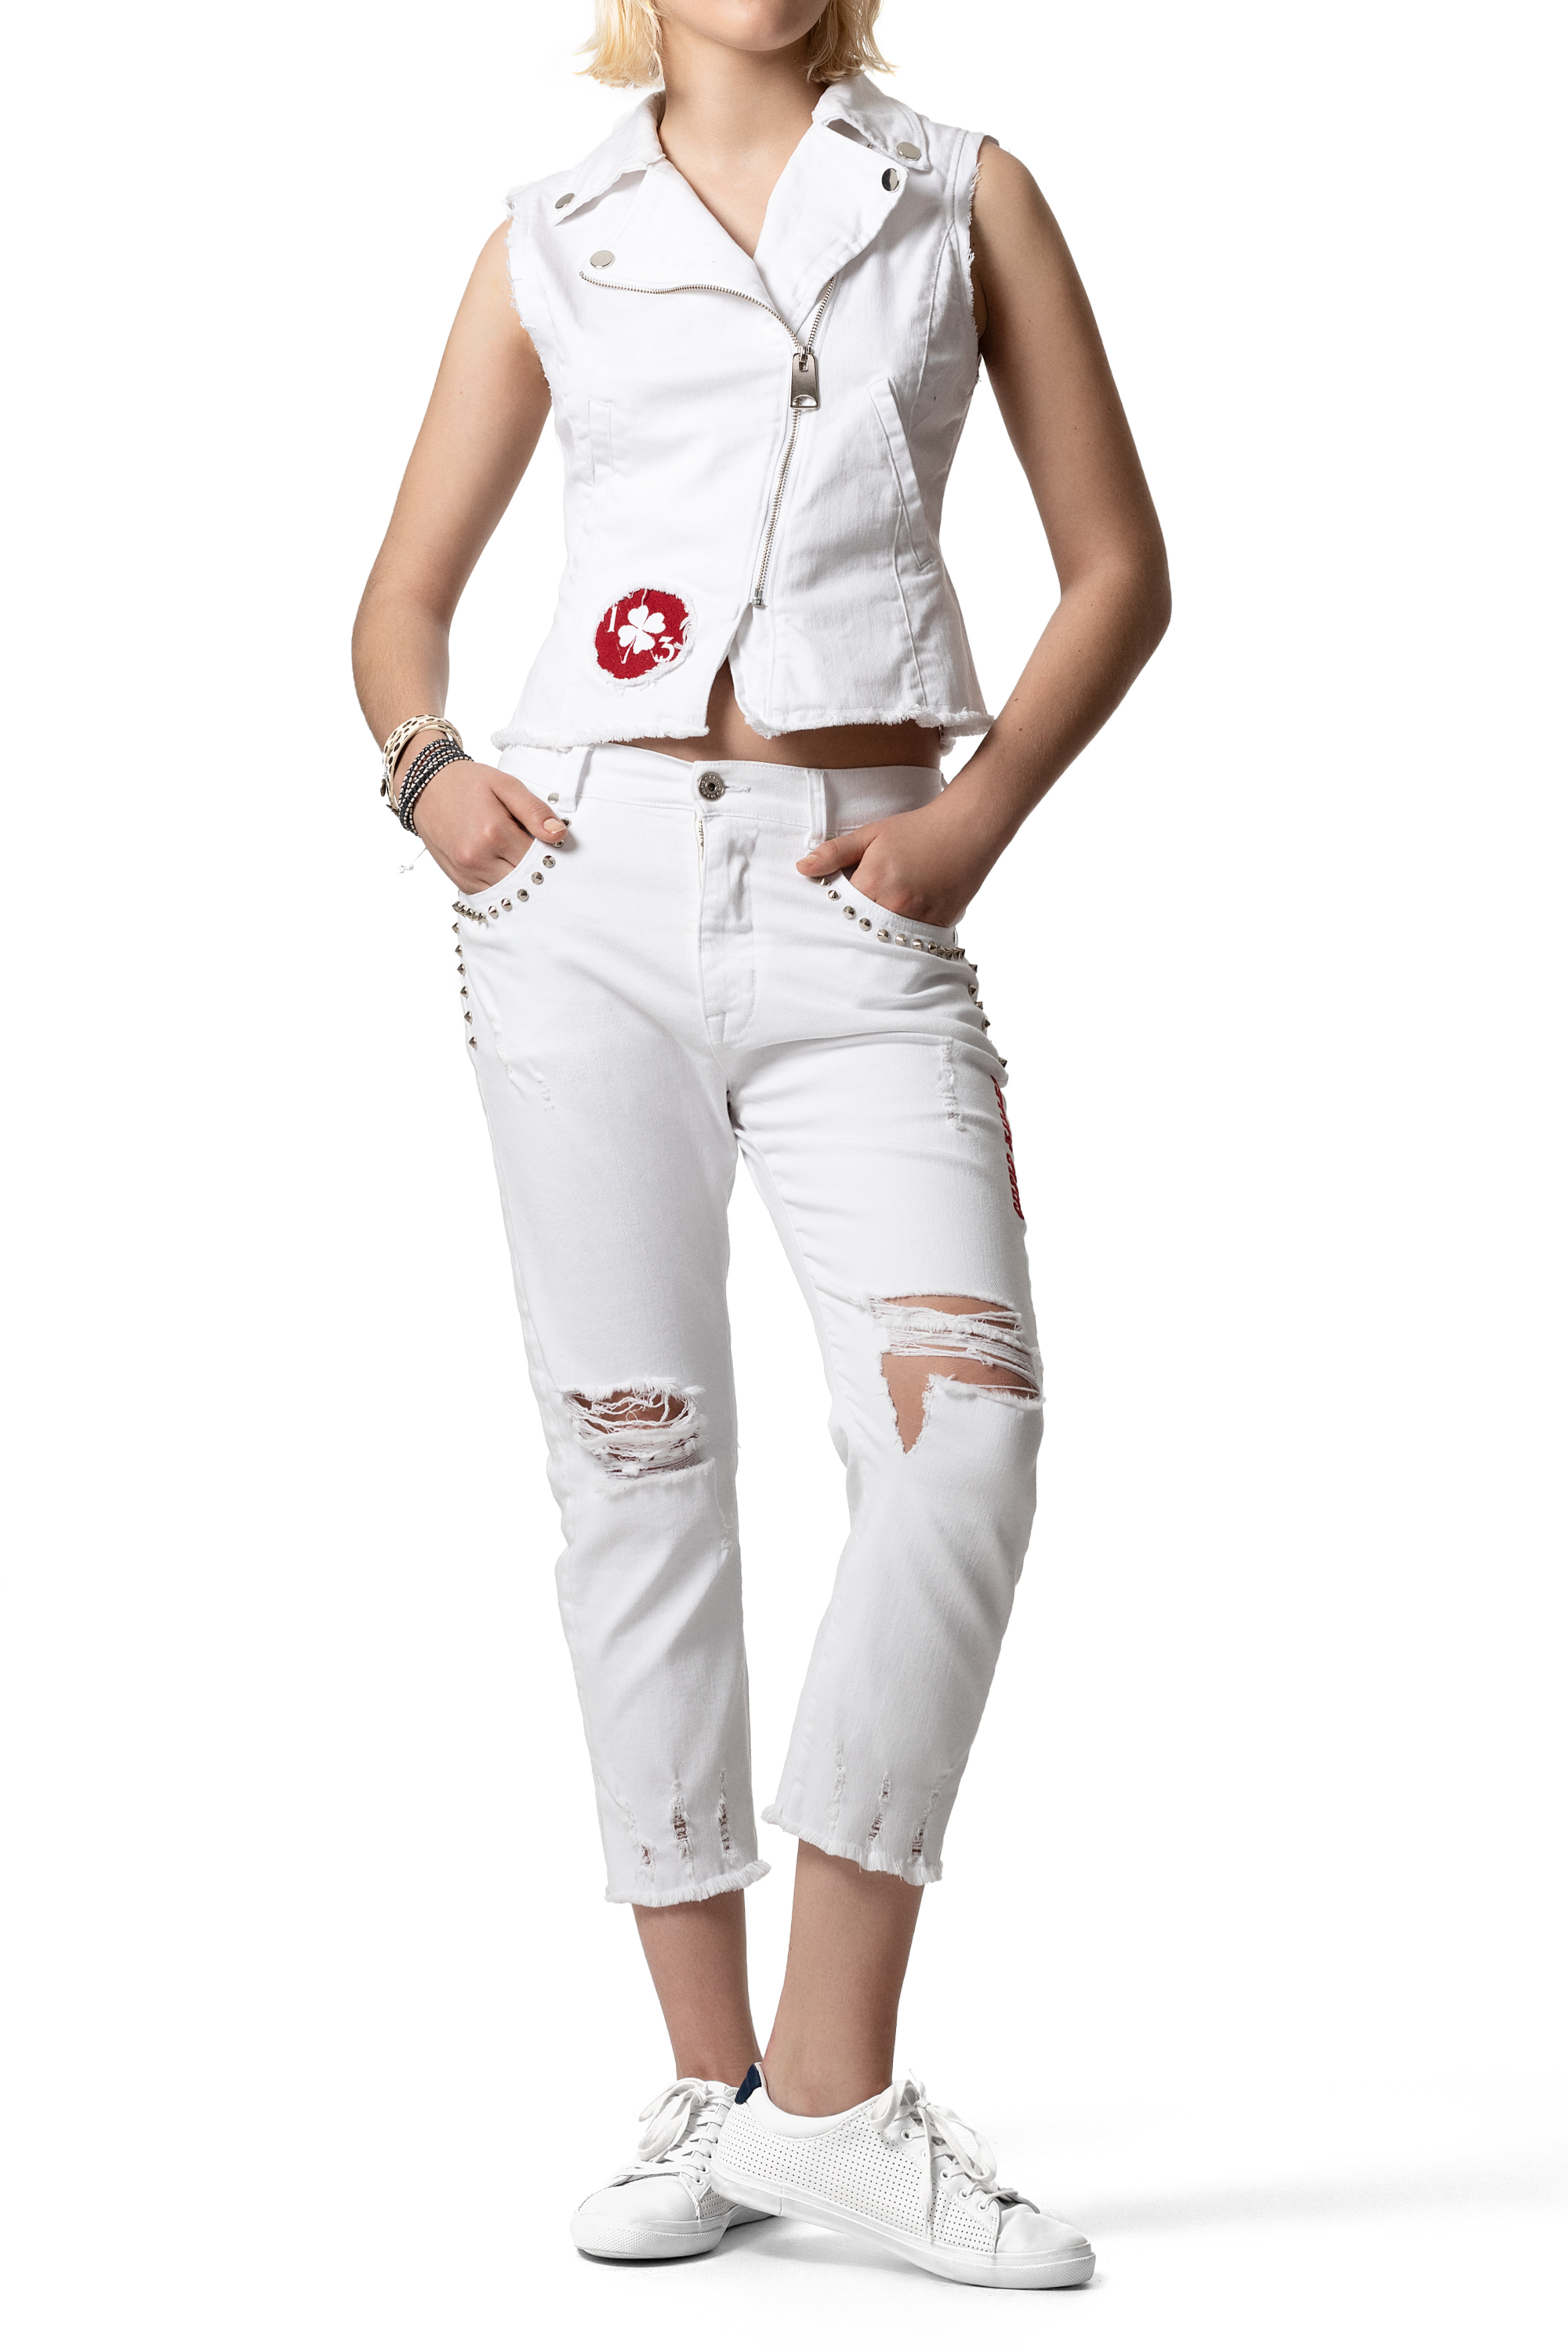 CUPID KILLER COLLECTION Laredo White color jeans for Women CK000142-1